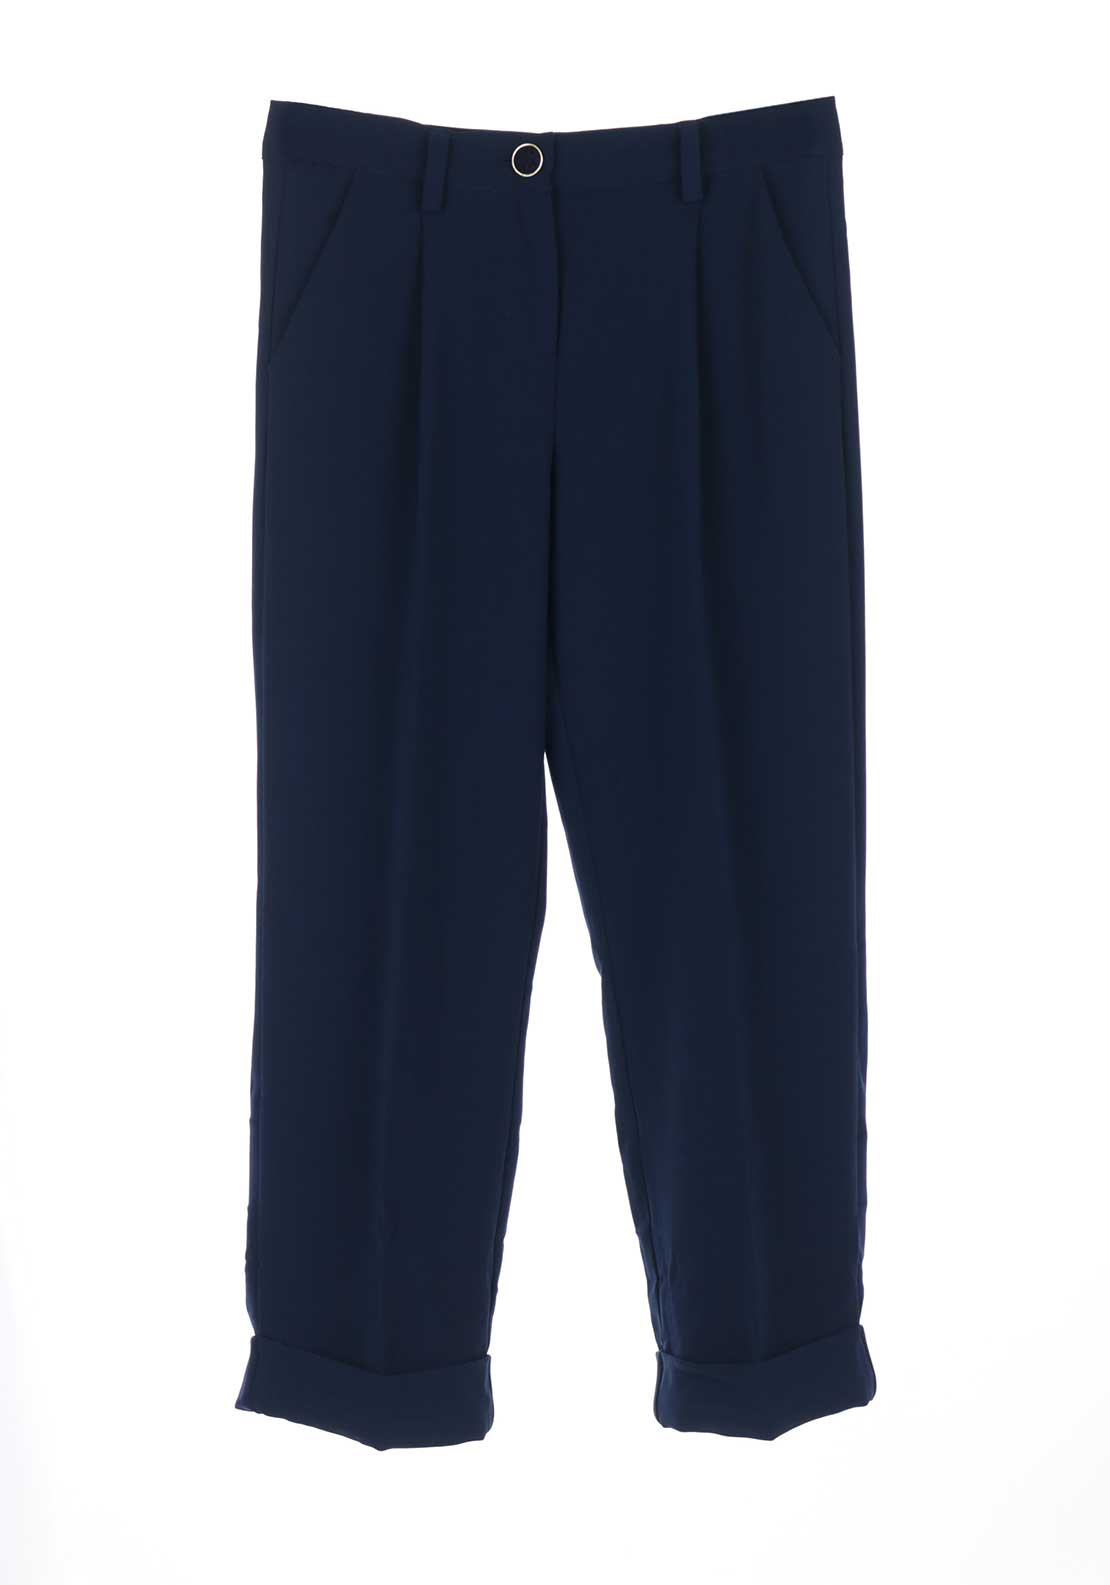 Guess Girls Tailored 7/8 Trousers, Navy